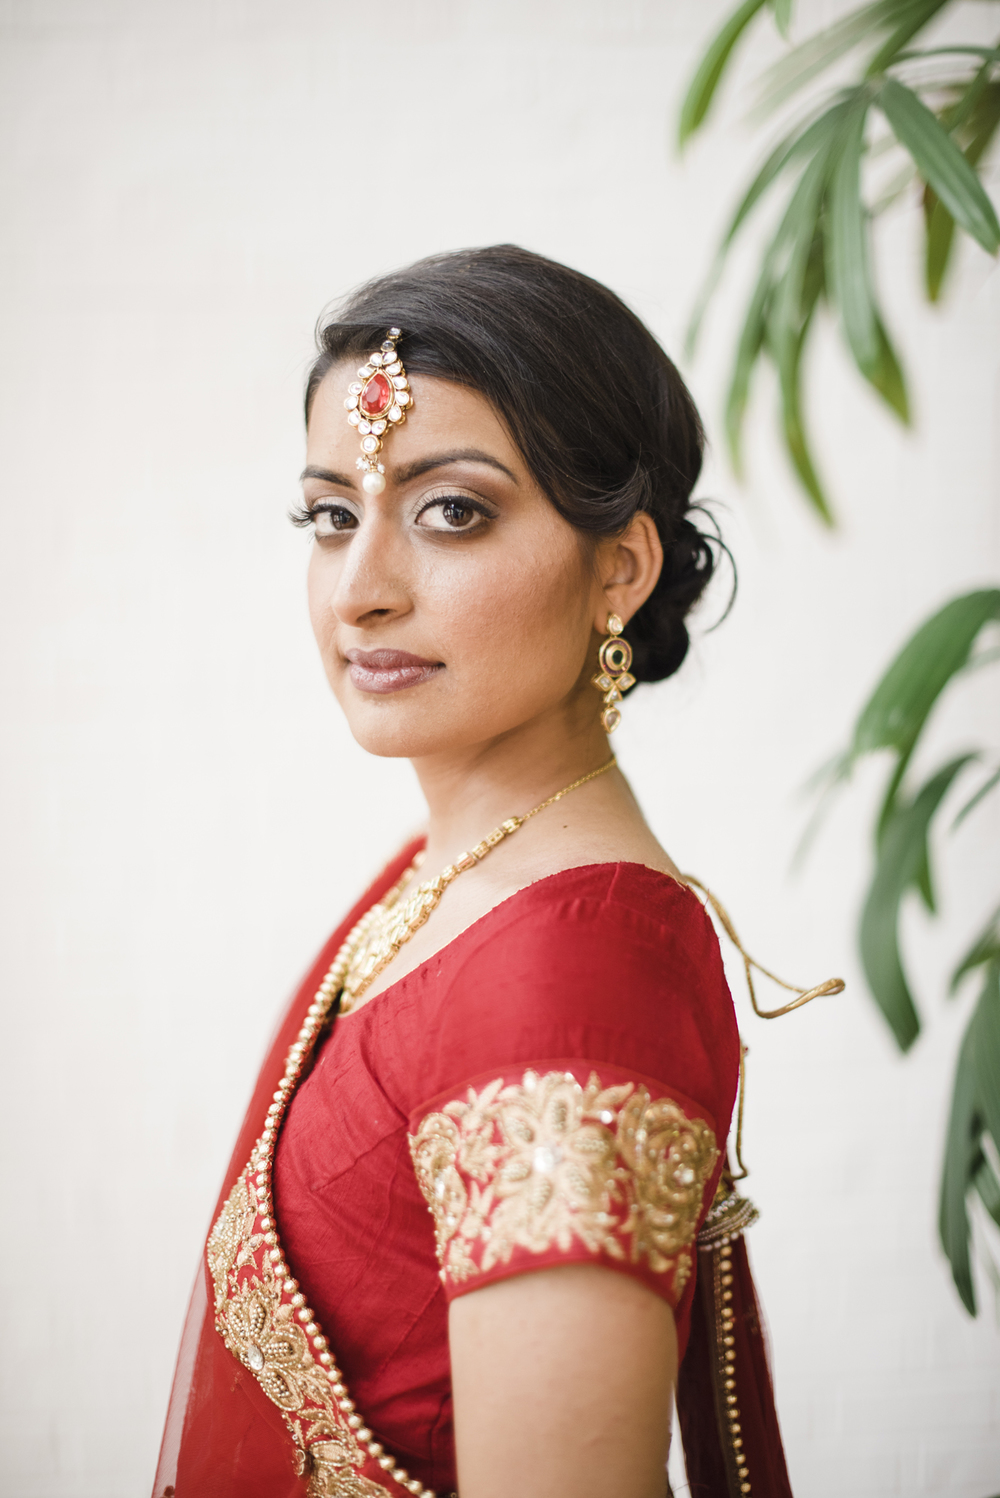 Bloomington_Hindu_Wedding_0017.jpg